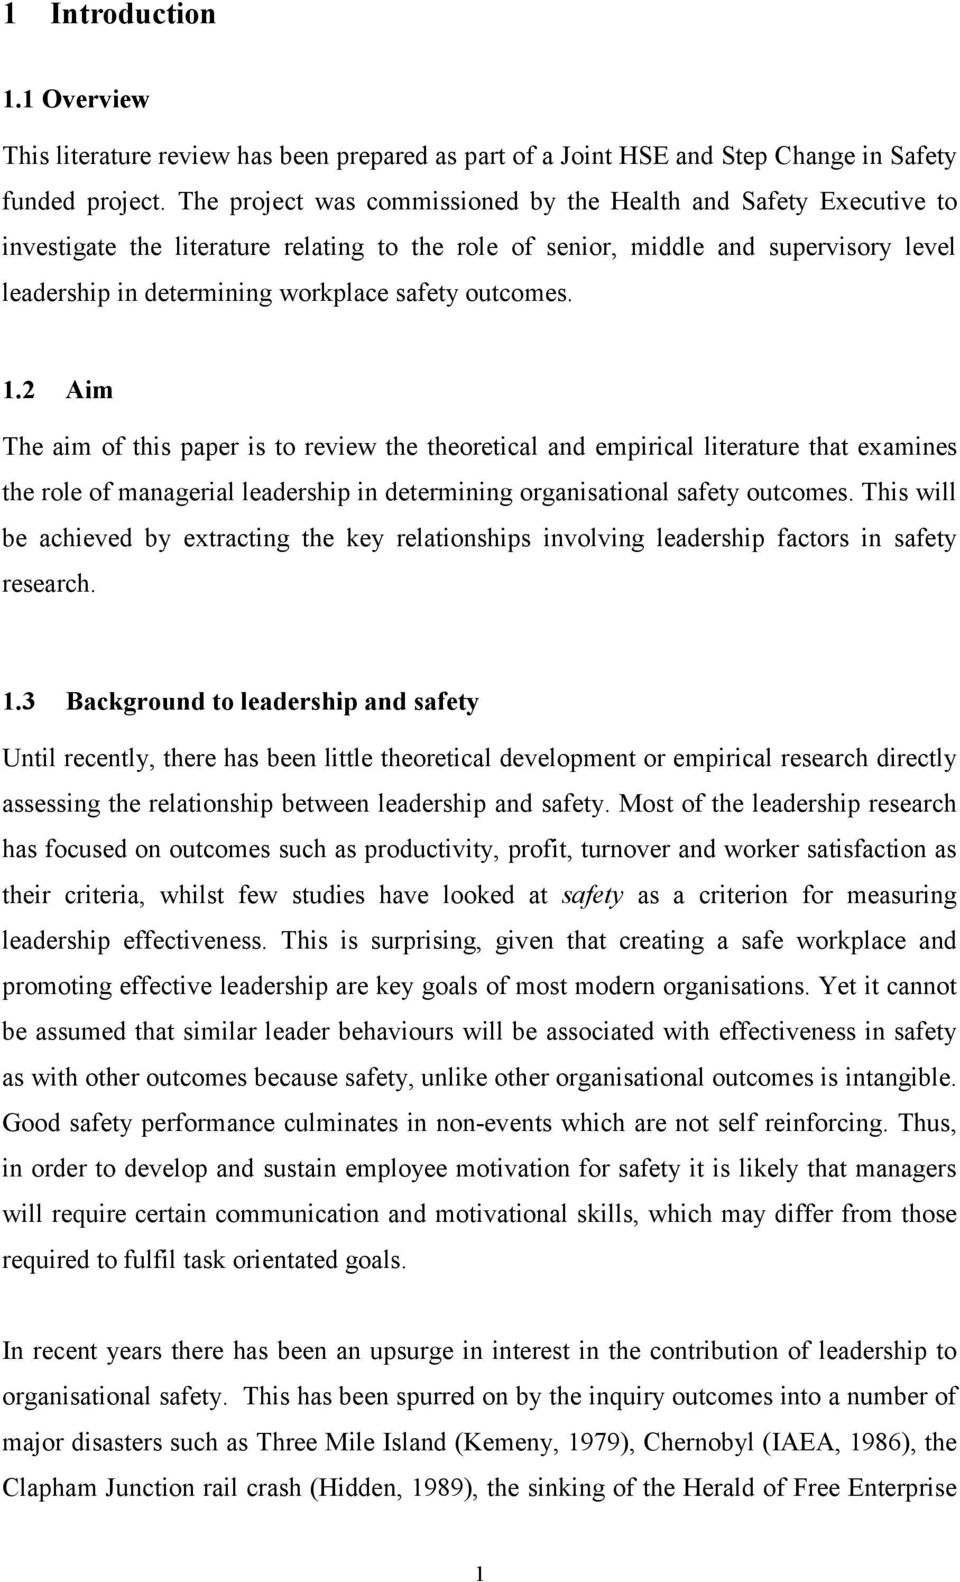 outcomes. 1.2 Aim The aim of this paper is to review the theoretical and empirical literature that examines the role of managerial leadership in determining organisational safety outcomes.